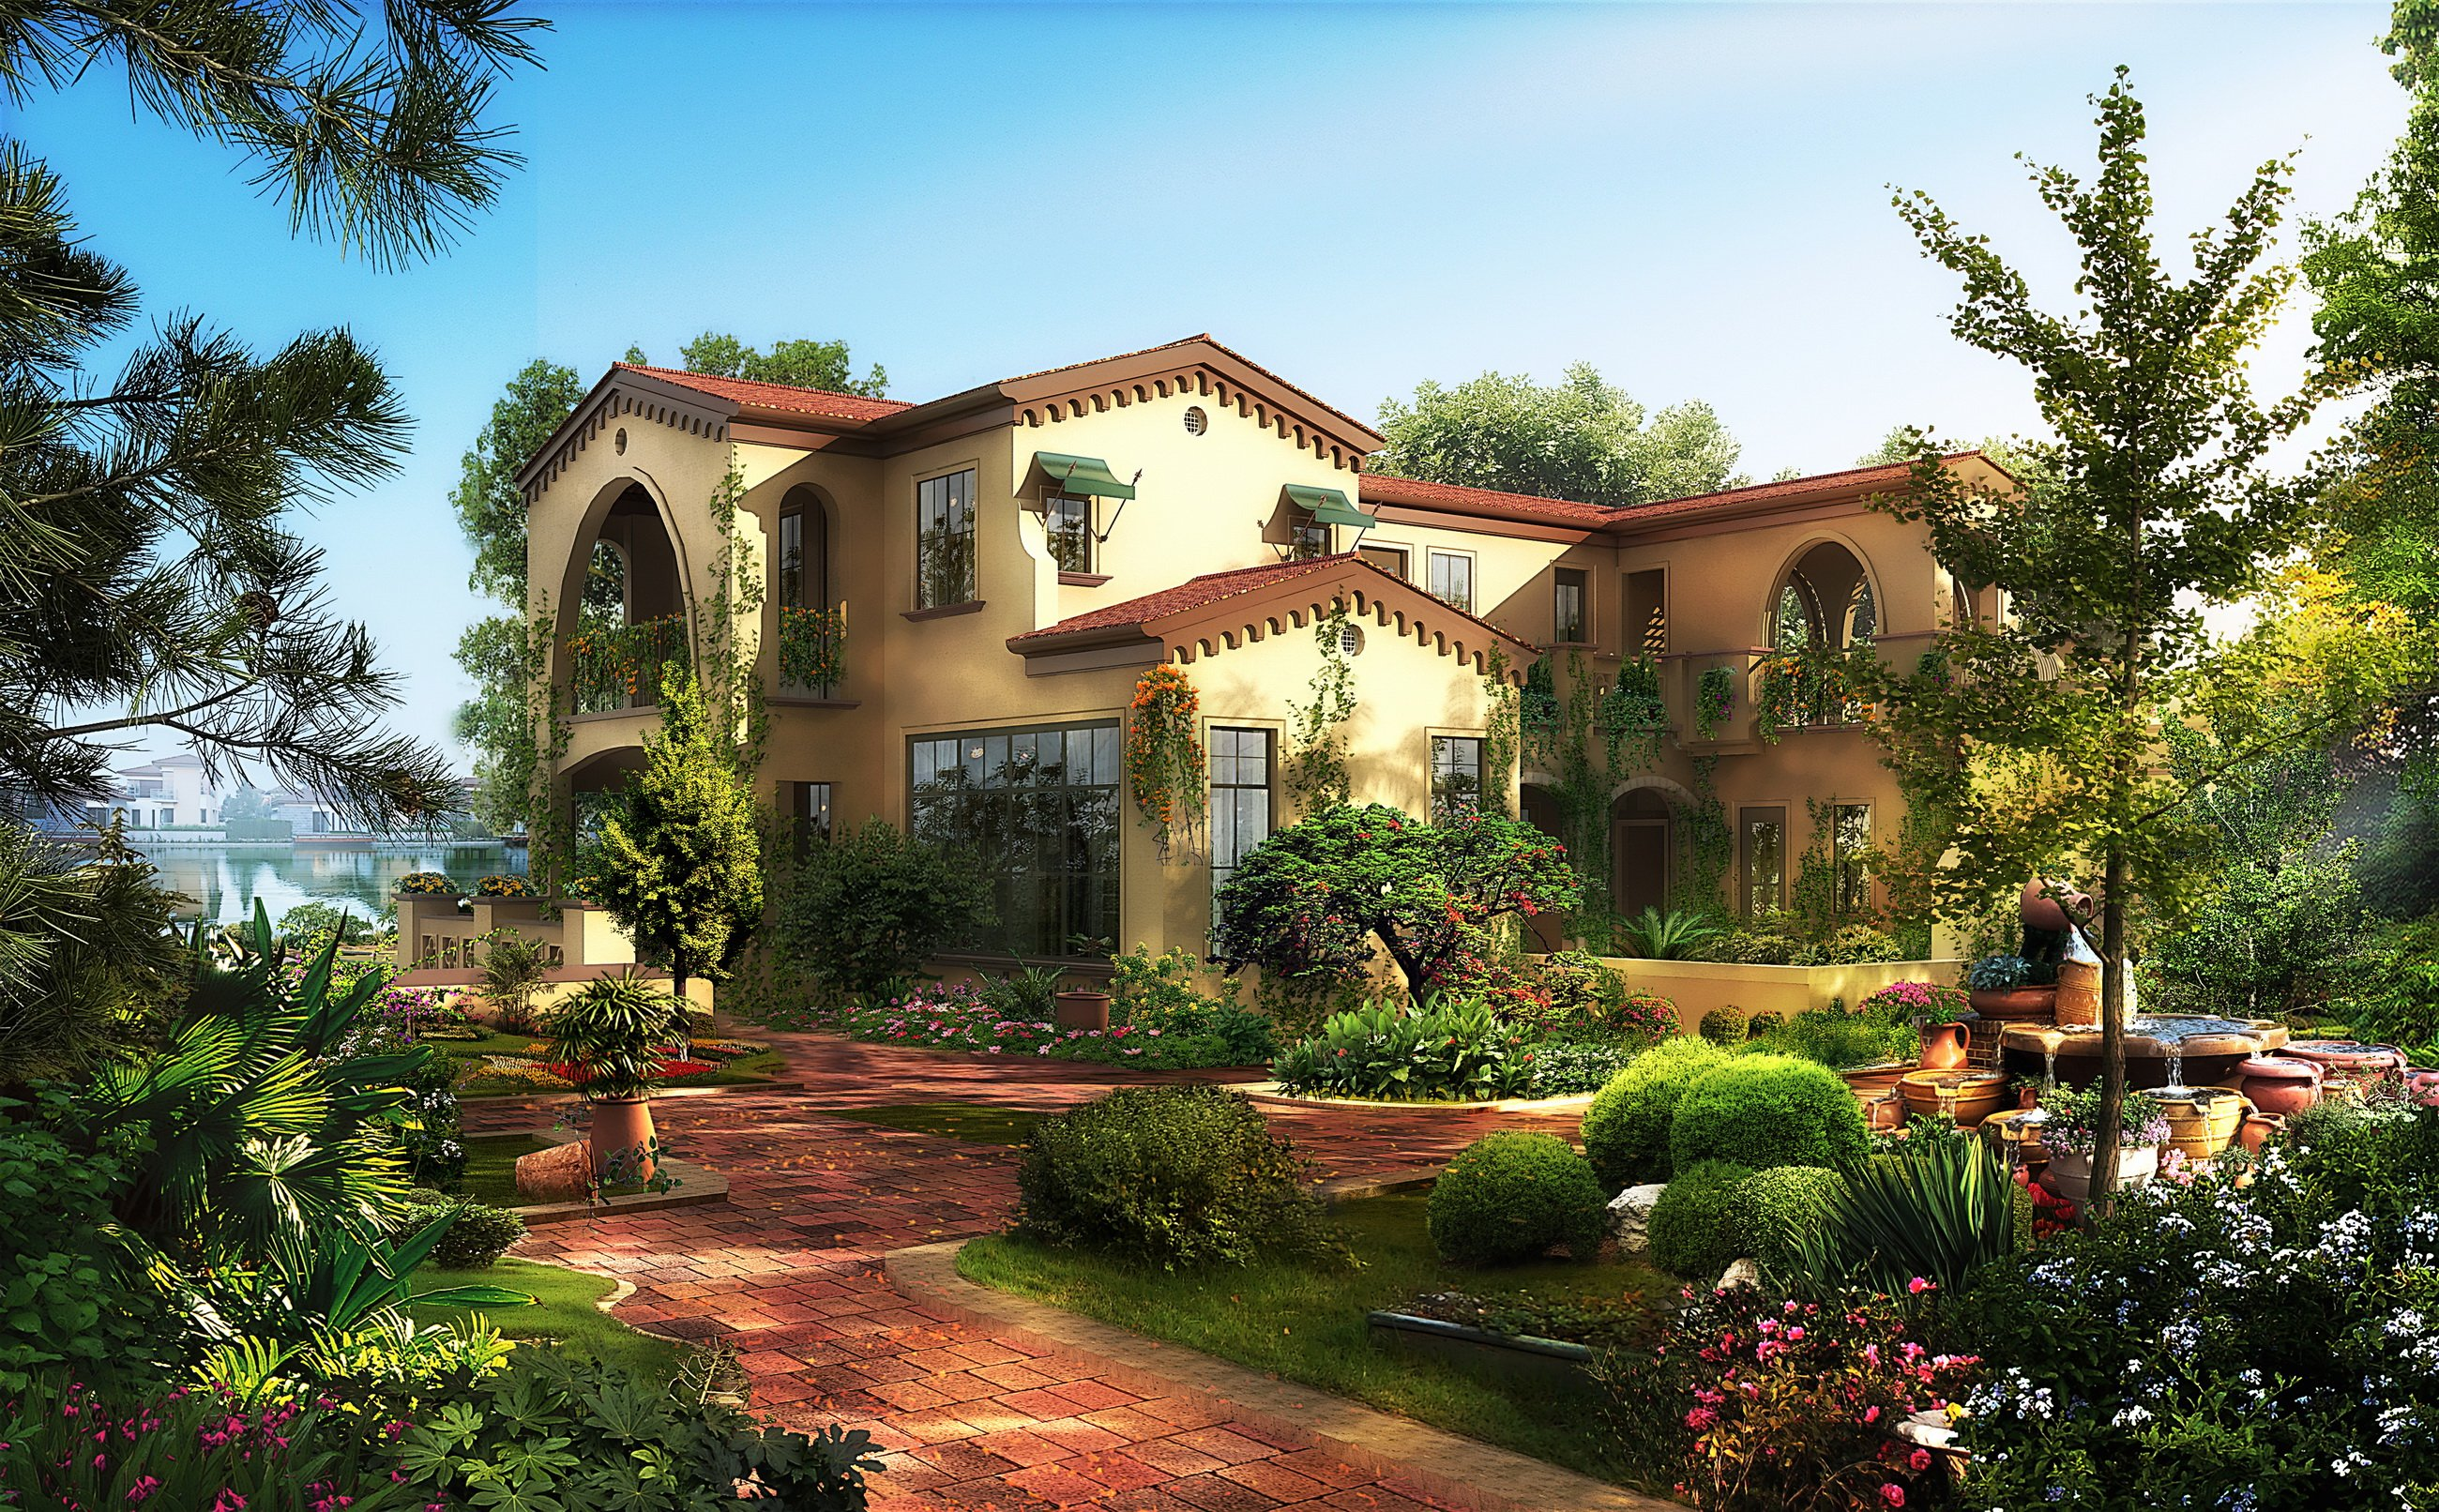 Houses gardens mansion shrubs cities 3d graphics wallpaper for Anvica homes 3d wallpaper